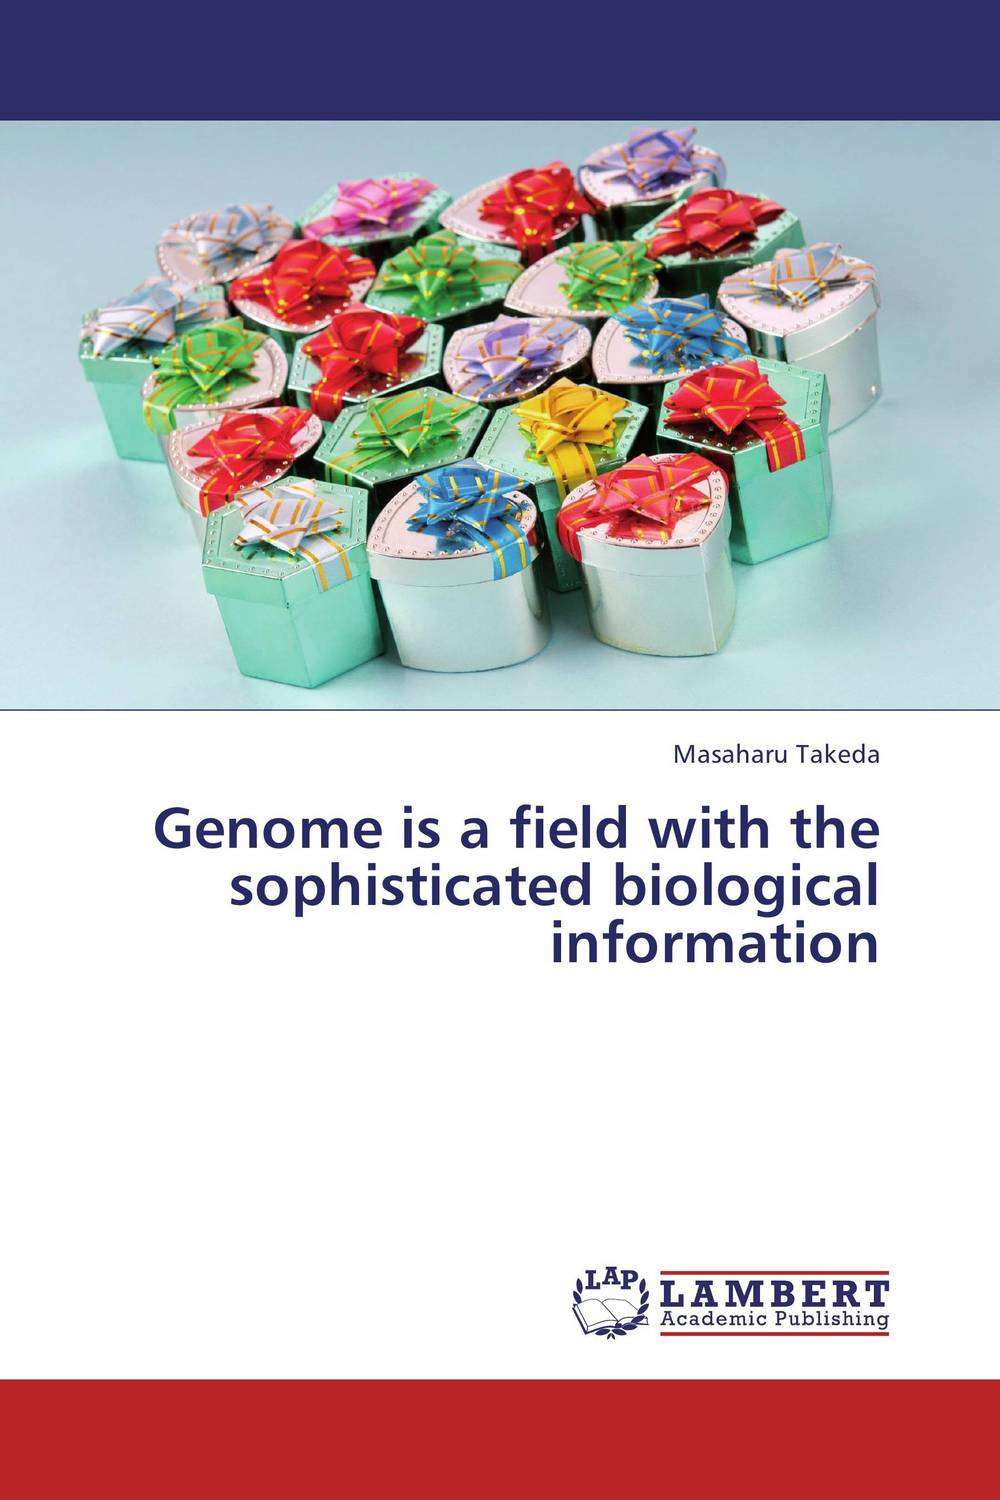 Genome is a field with the sophisticated biological information solitons in dna and biological implications